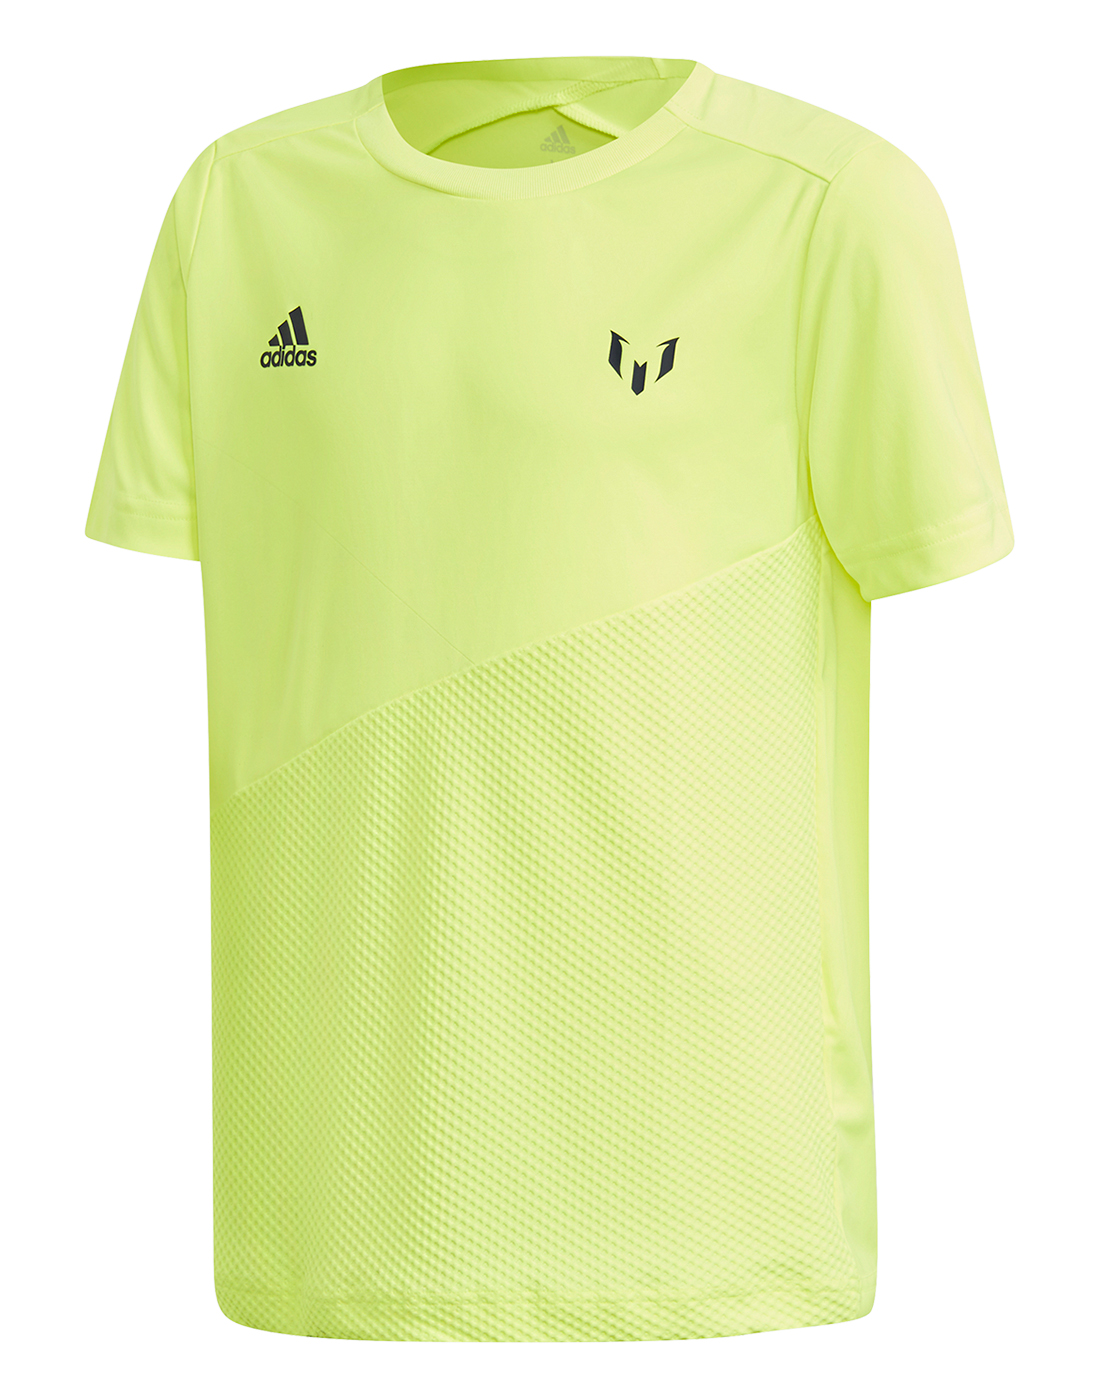 18cee6a5cd1 Kid's Neon Yellow adidas Messi Jersey | Life Style Sports